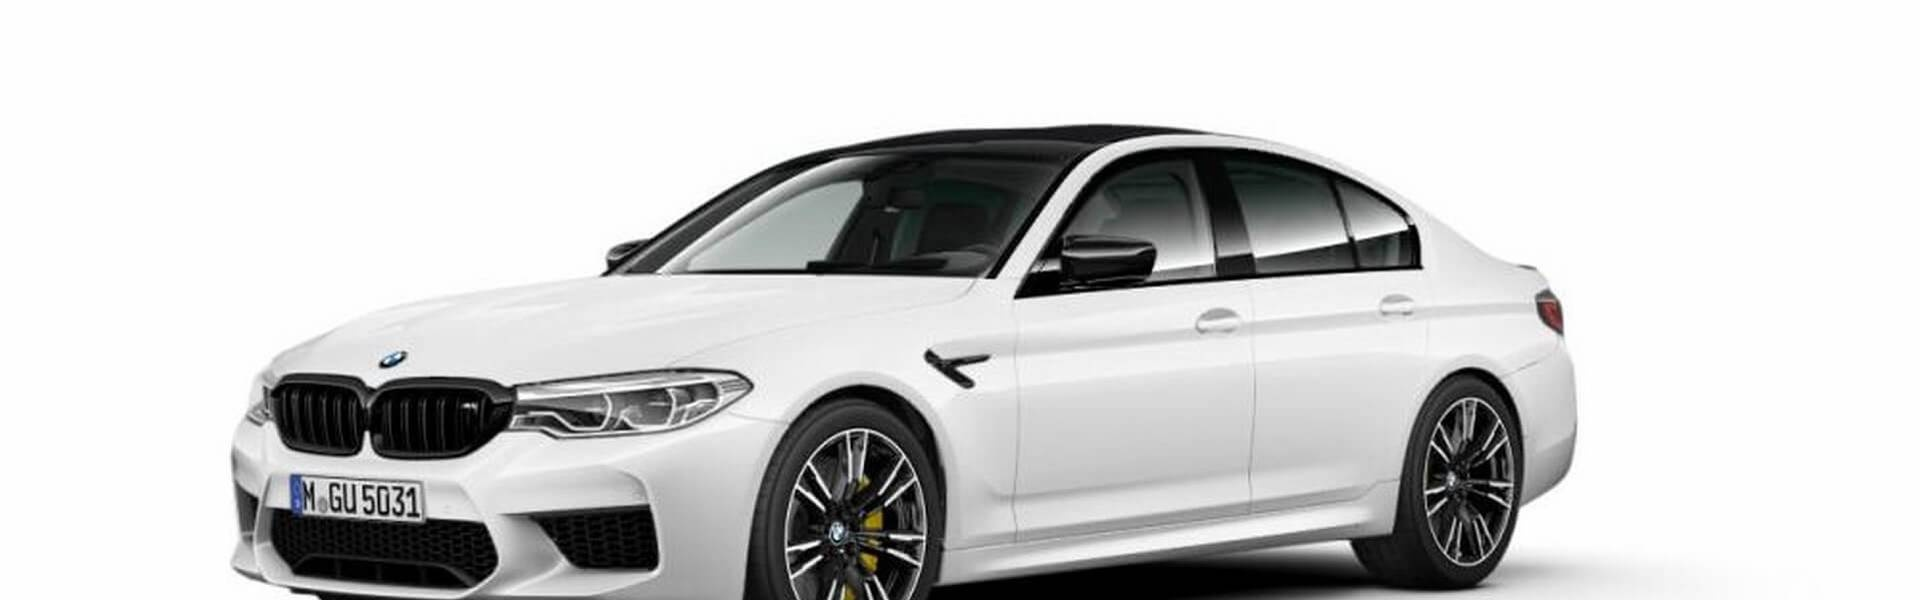 bmw-m5-with-the-competition-package.jpg